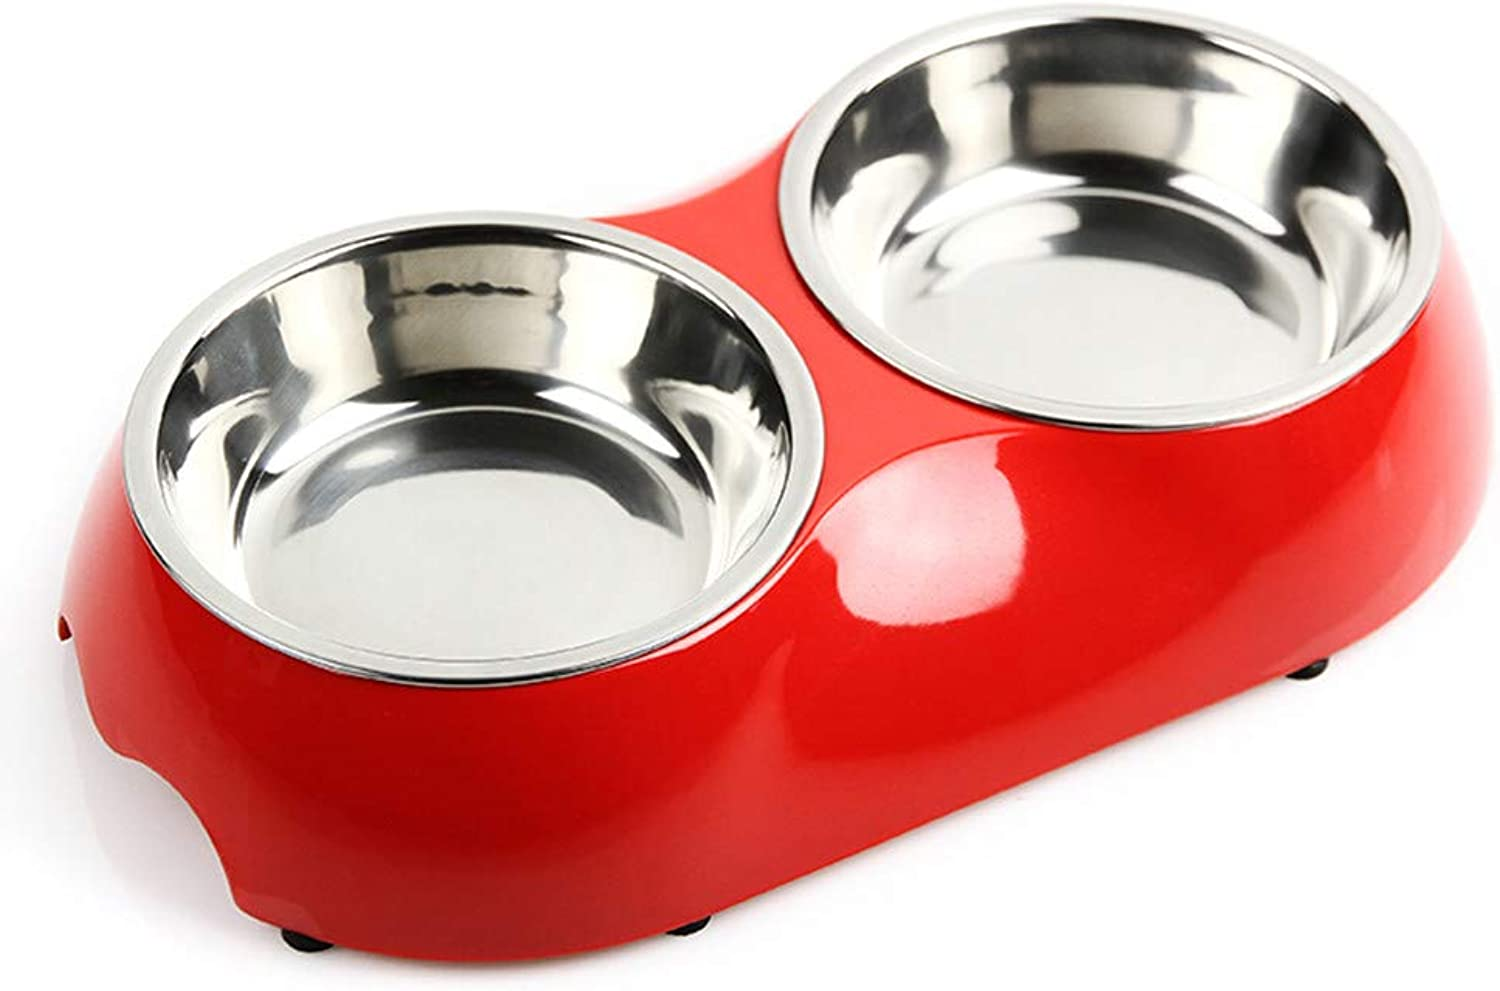 FOREVERYOU Pet Dog cat Stainless Steel Bowl Water Bowl Double AntiSlip, red